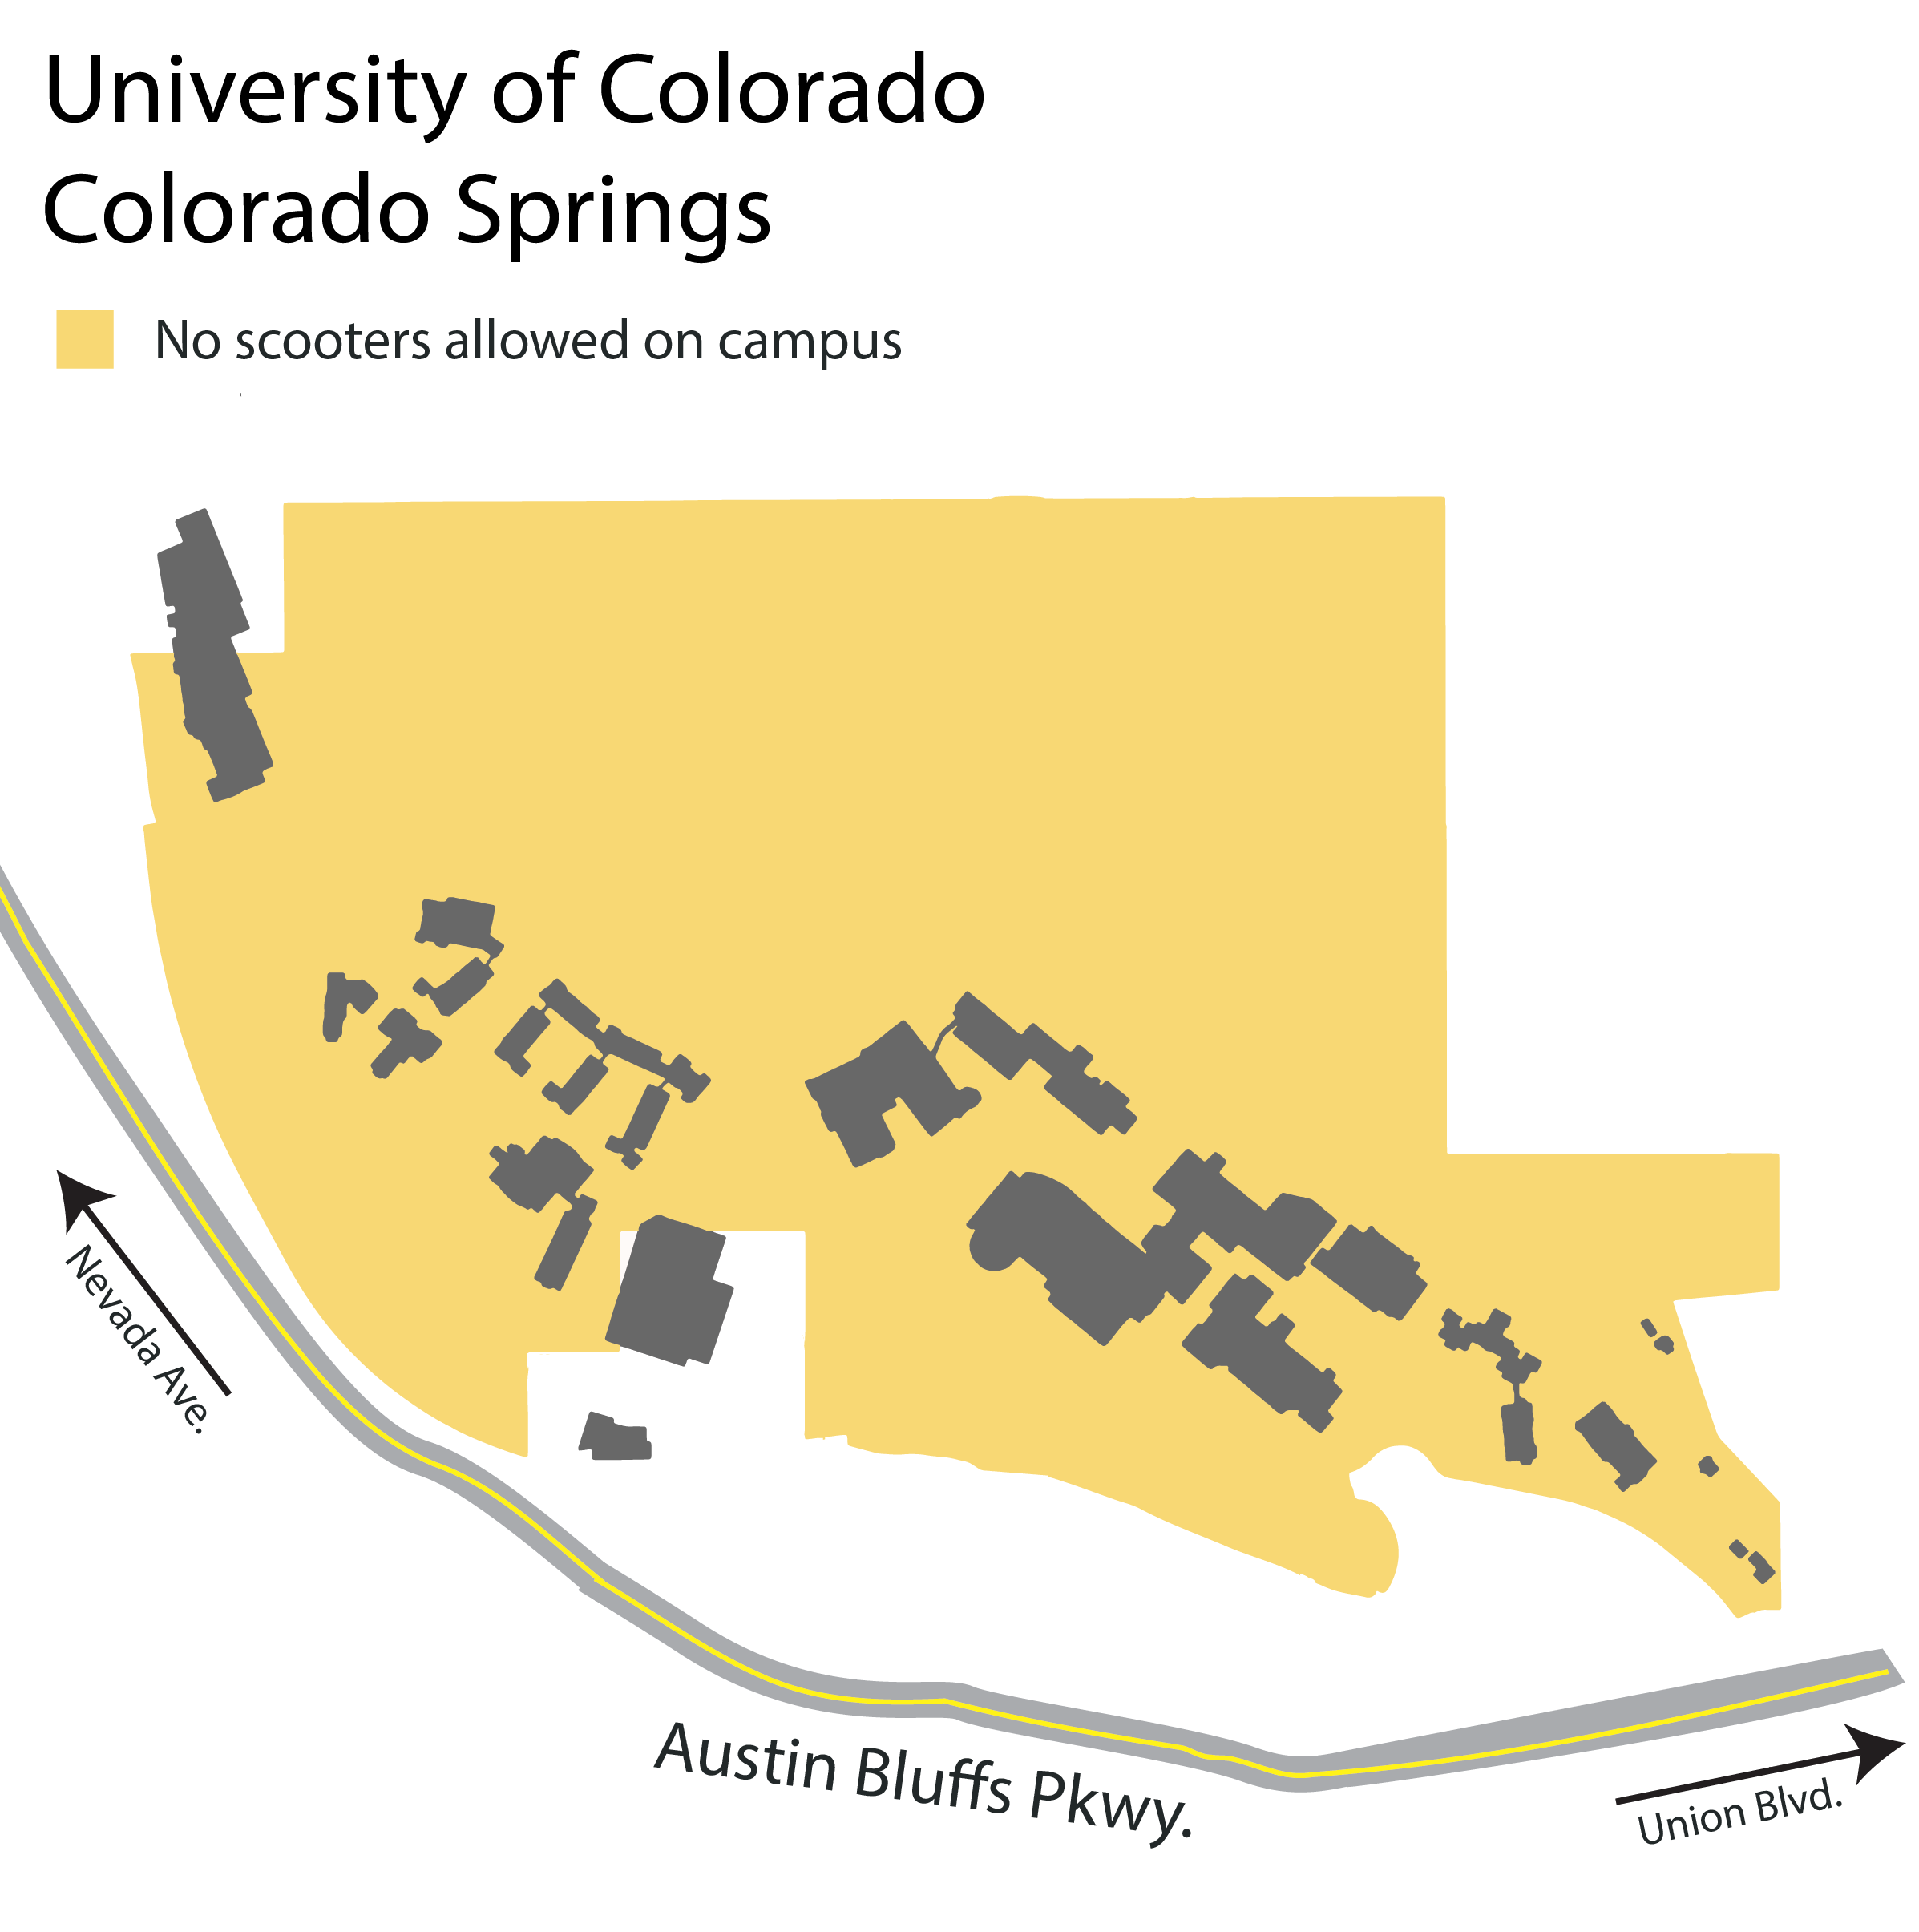 Map of University of Colorado Colorado Springs where scooters are not allowed on campus